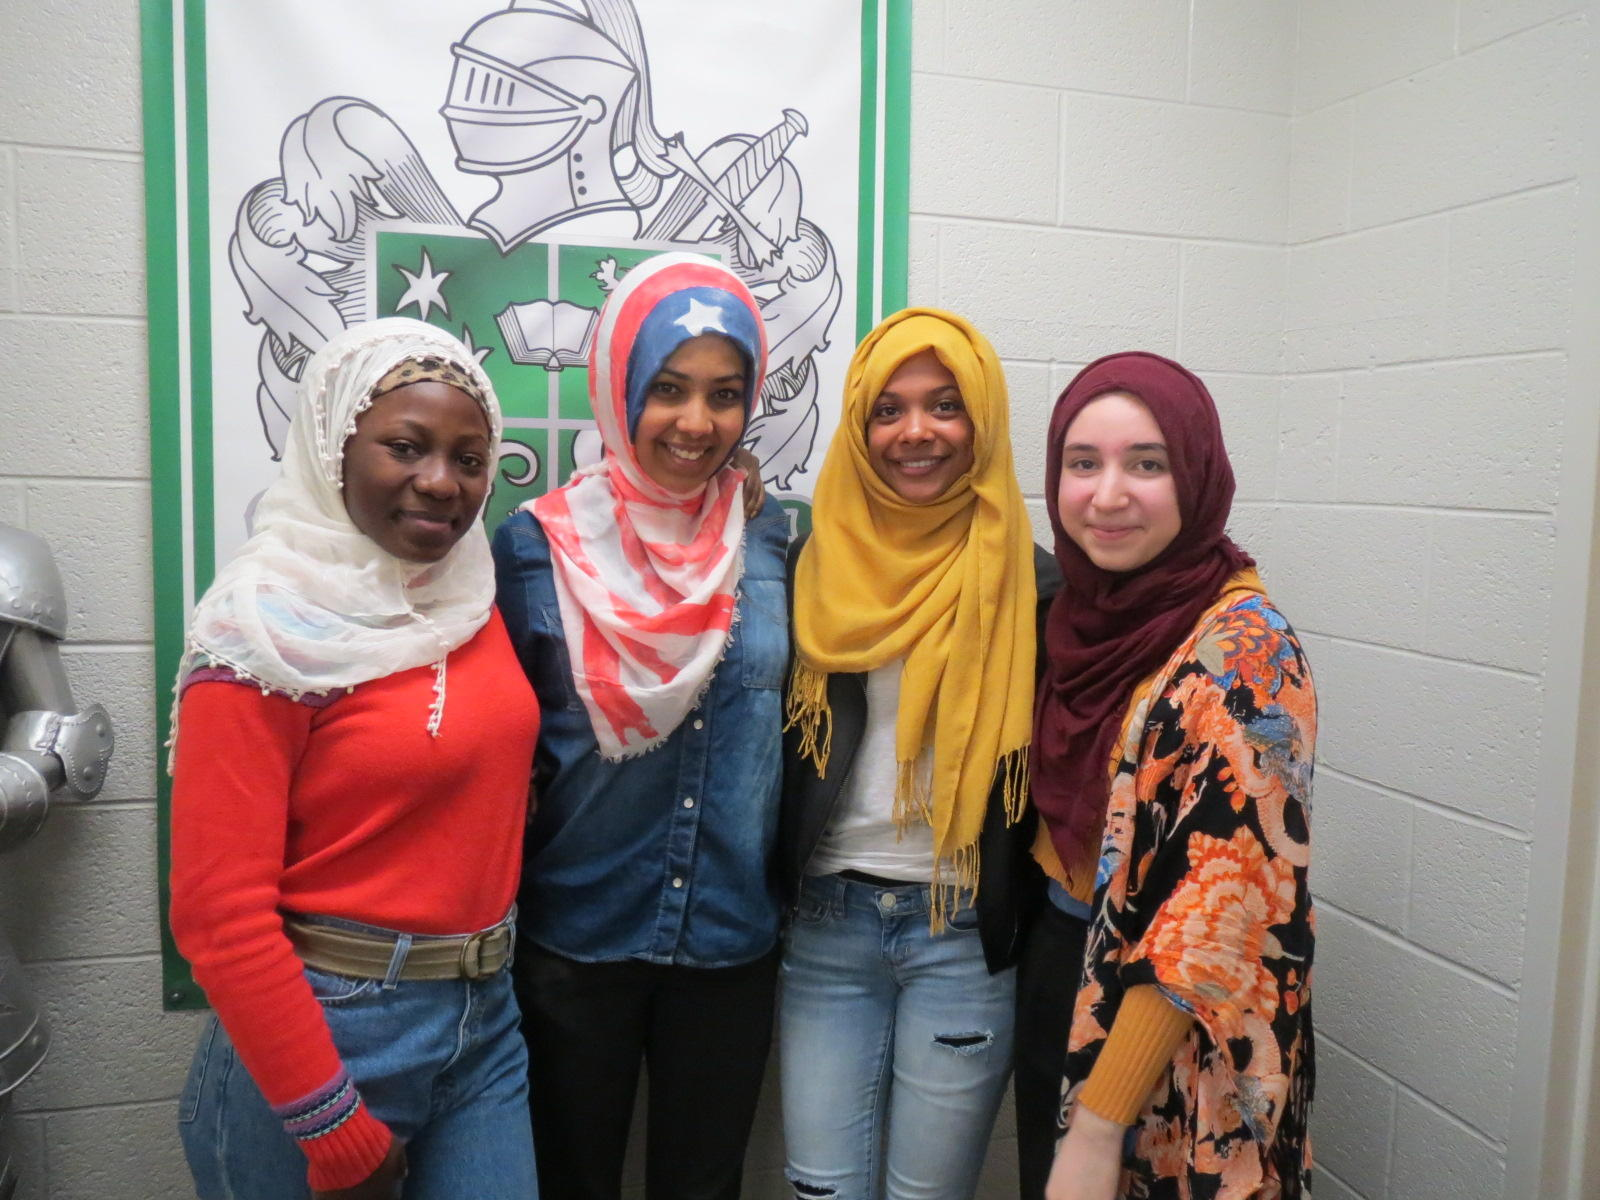 Muslim women lament frequent harassment over use of hijab